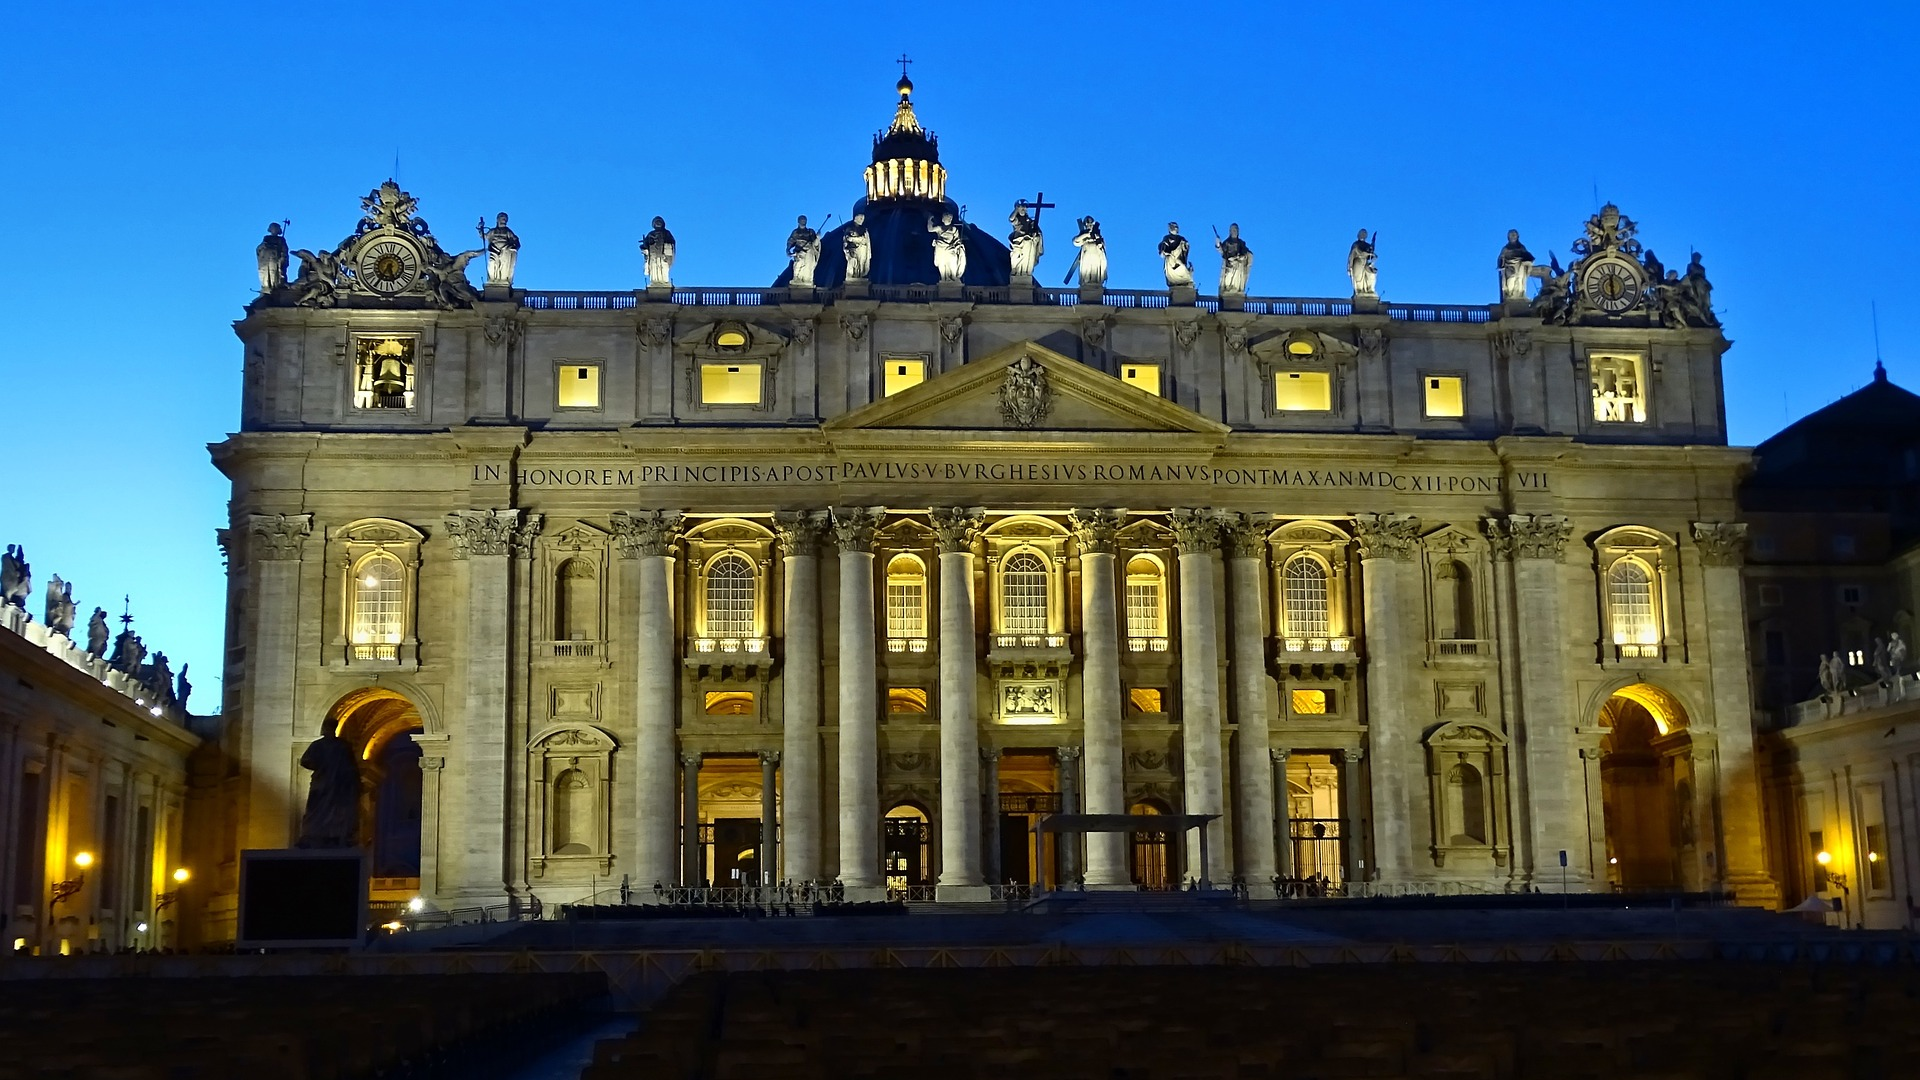 St. Peter's Basilica in Vatican City, Rome, Italy